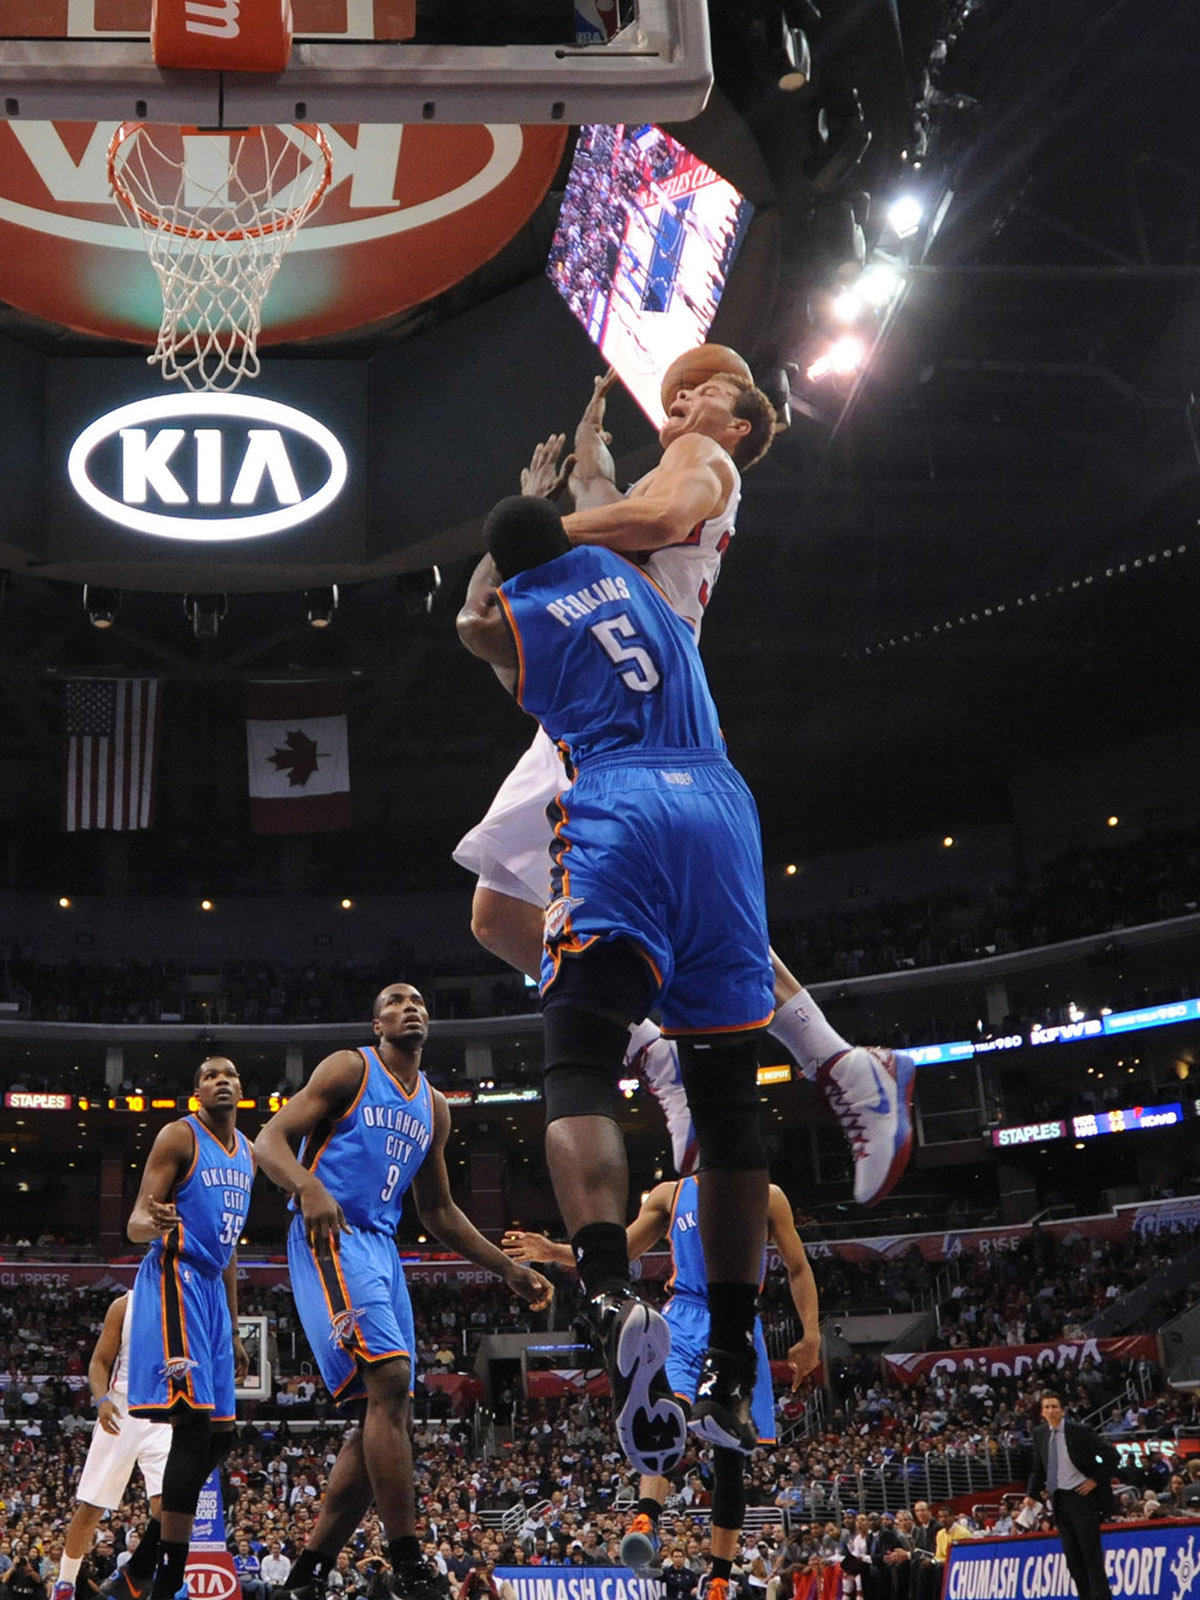 Blake Griffin meets Kendrick Perkins in the air before throwing down a dunk against the Oklahoma City Thunder.